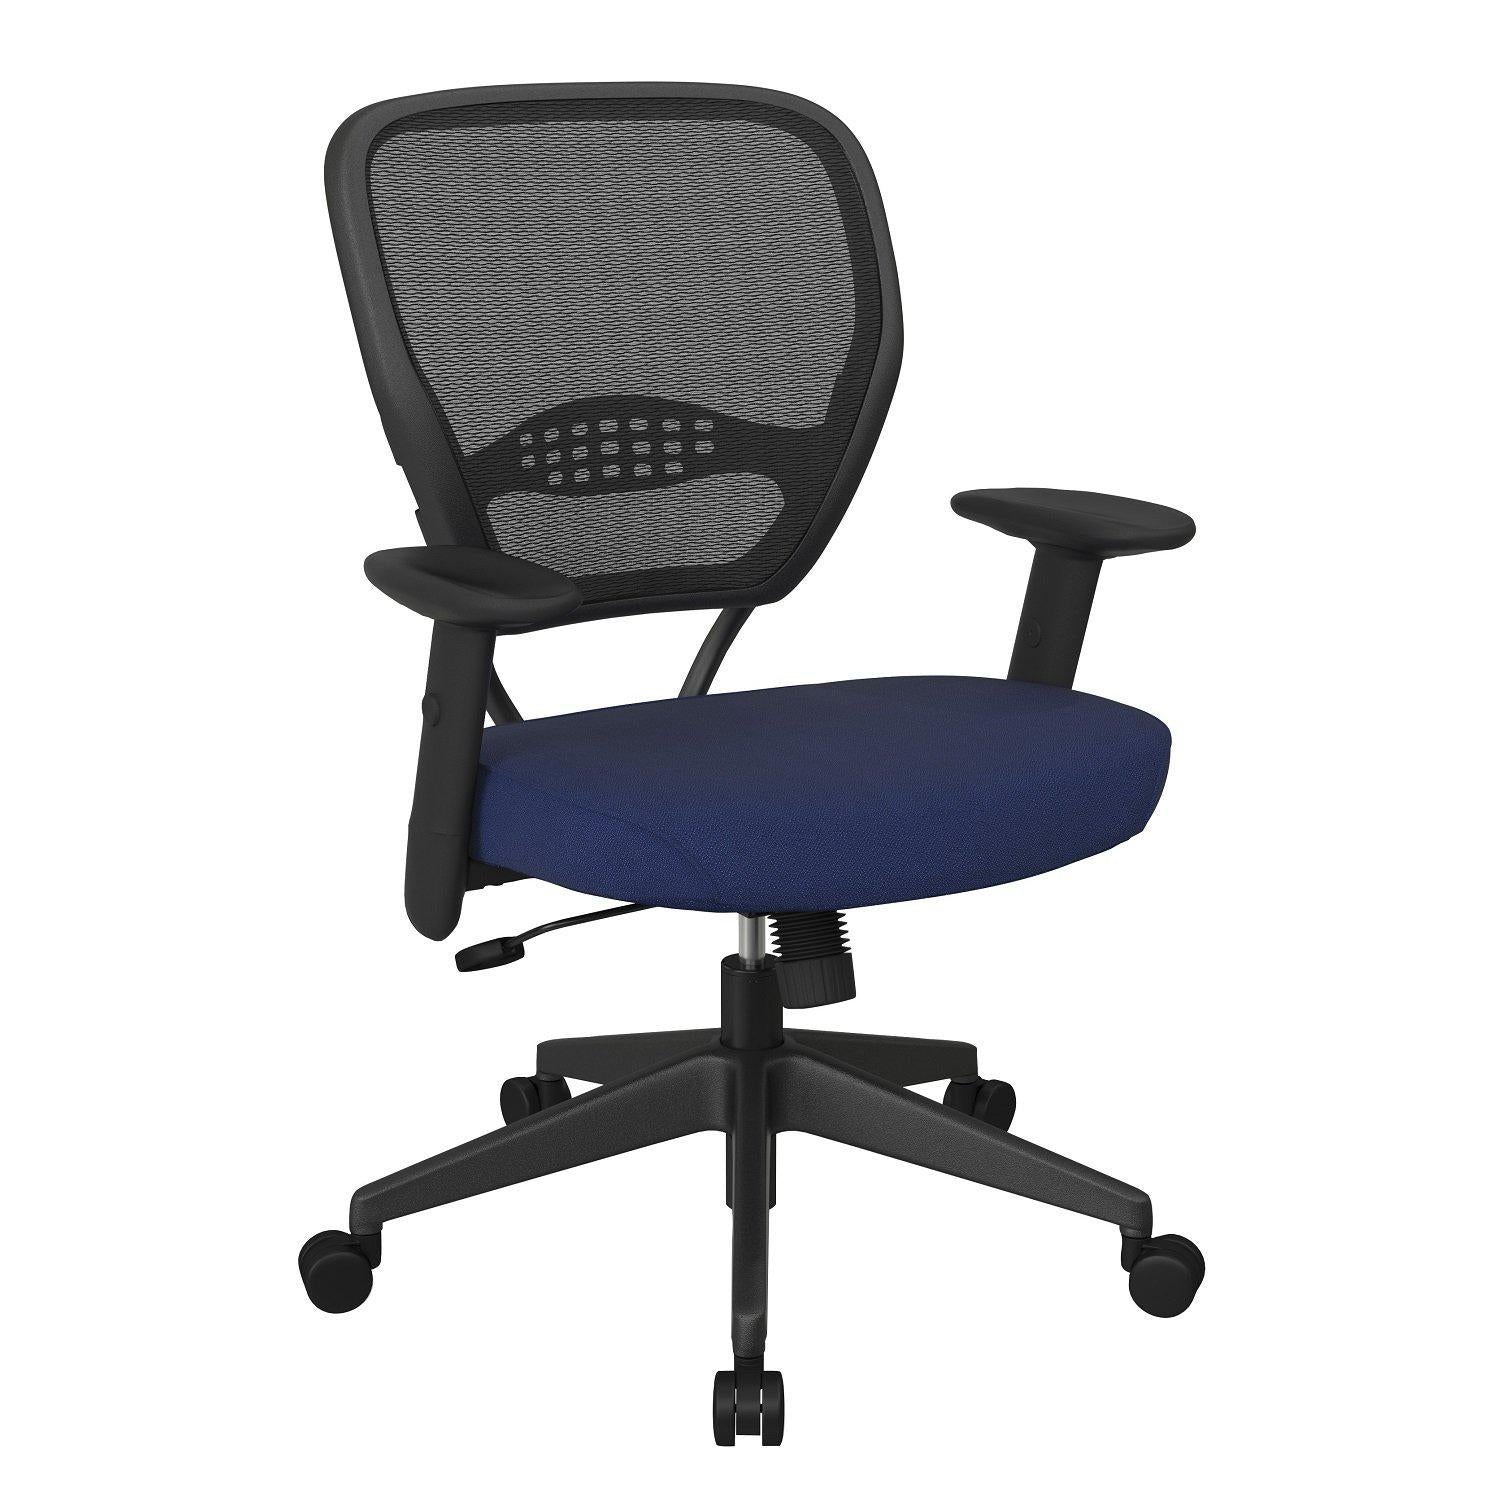 Professional AirGrid® Mesh Back Manager's Chair with Fabric Seat